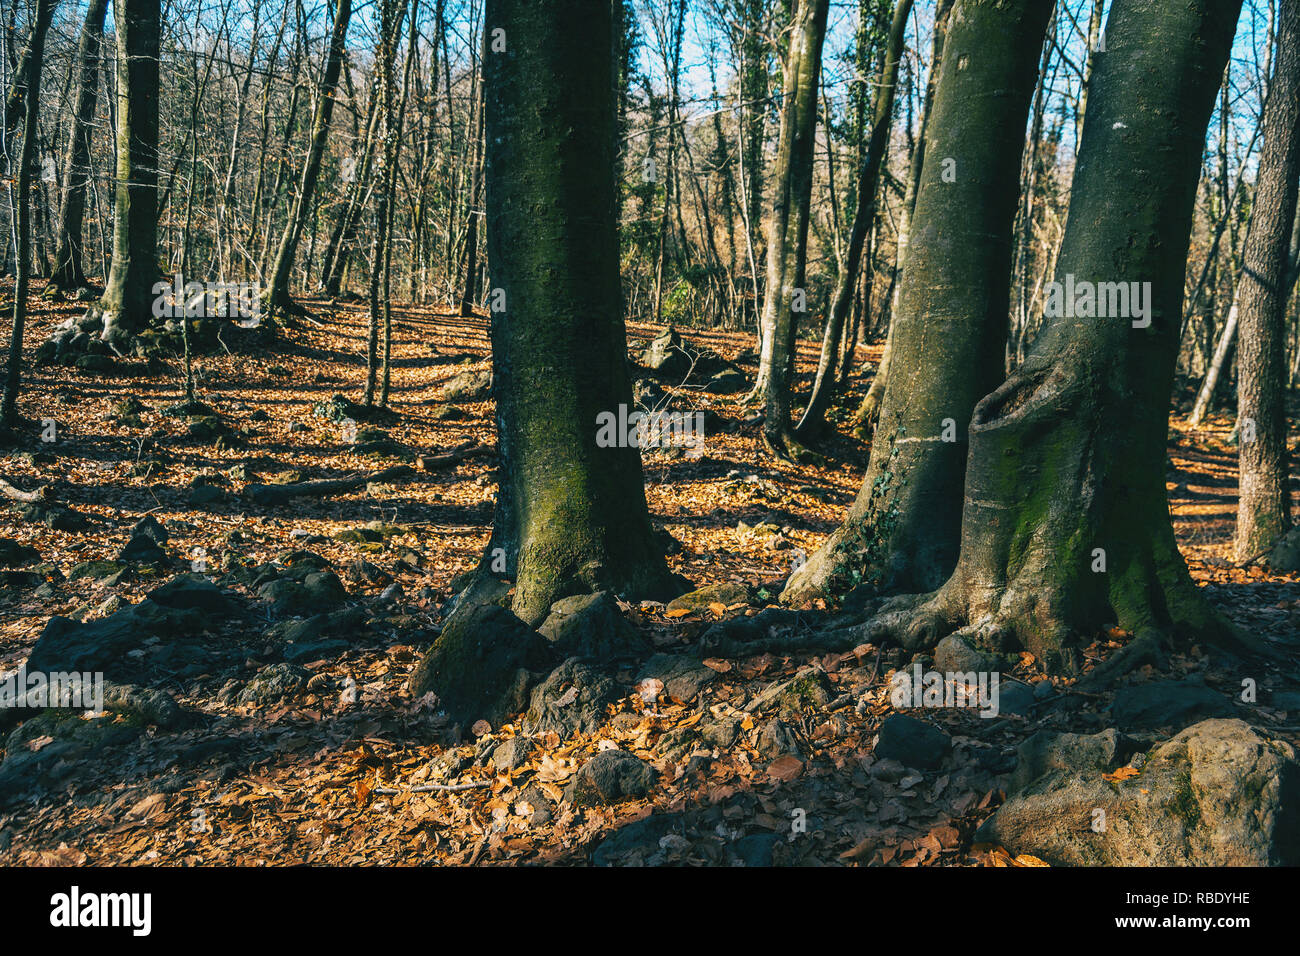 Three trees in an autumnal forest surrounded by a grove of bare trees - Stock Image